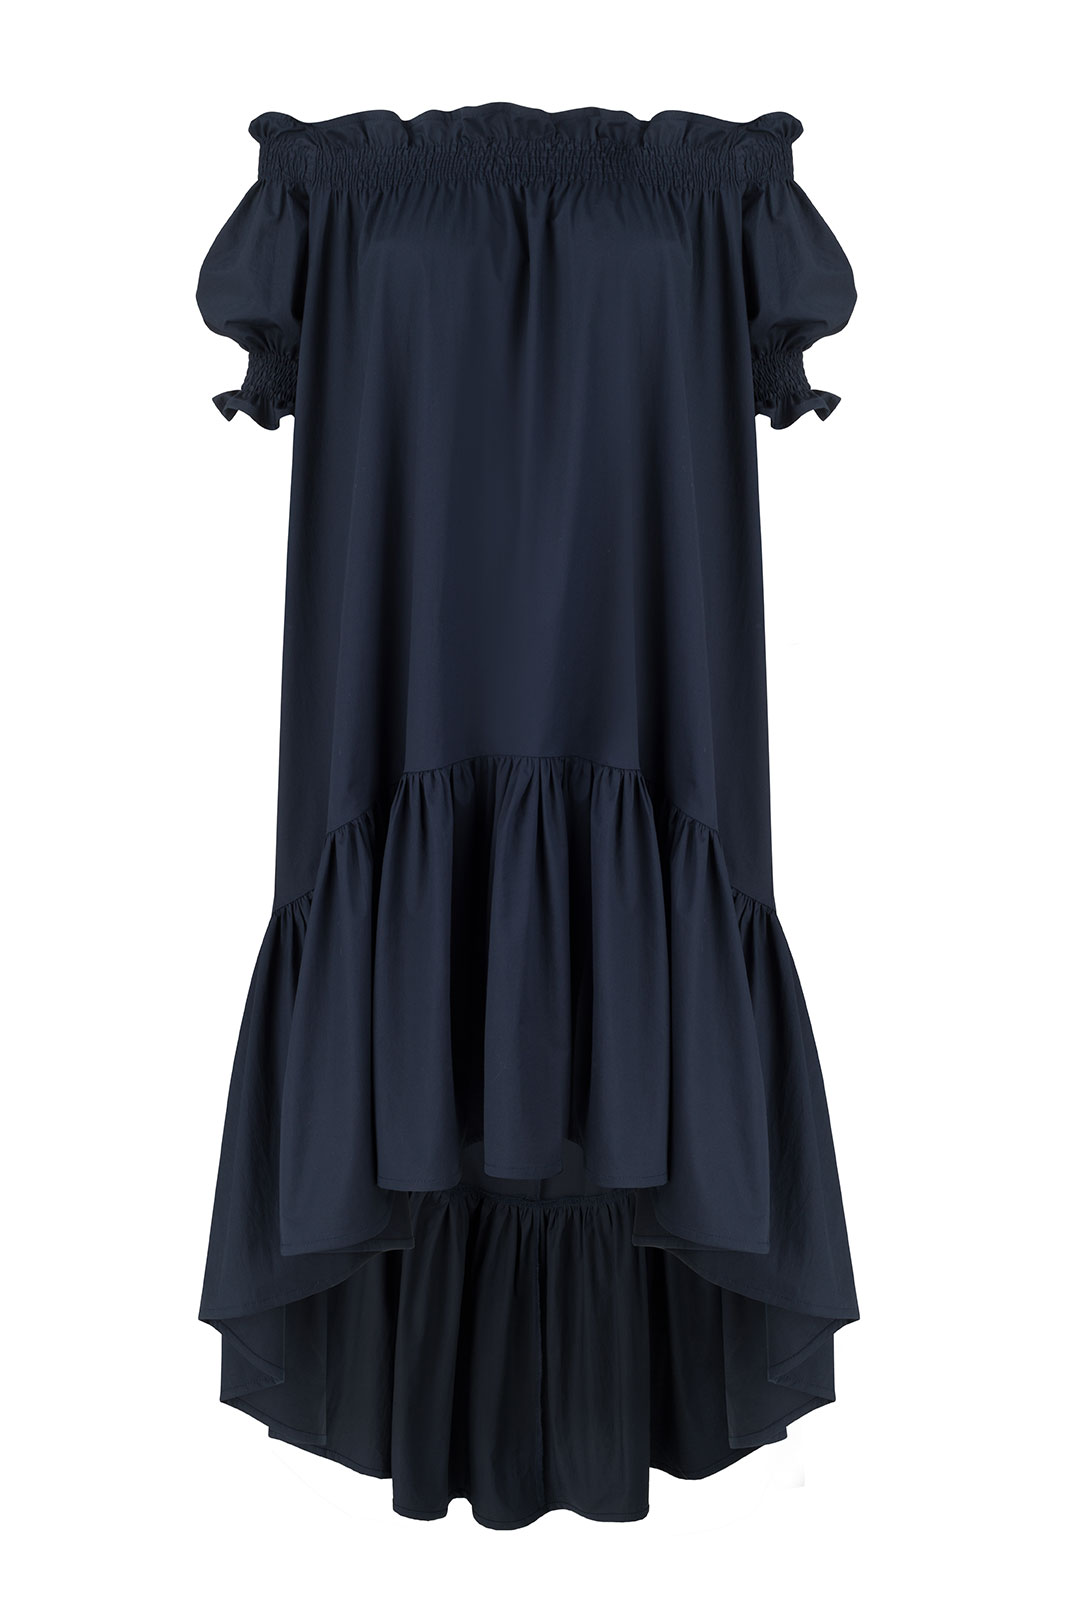 Lori Dress by Monica Nera on curated-crowd.com